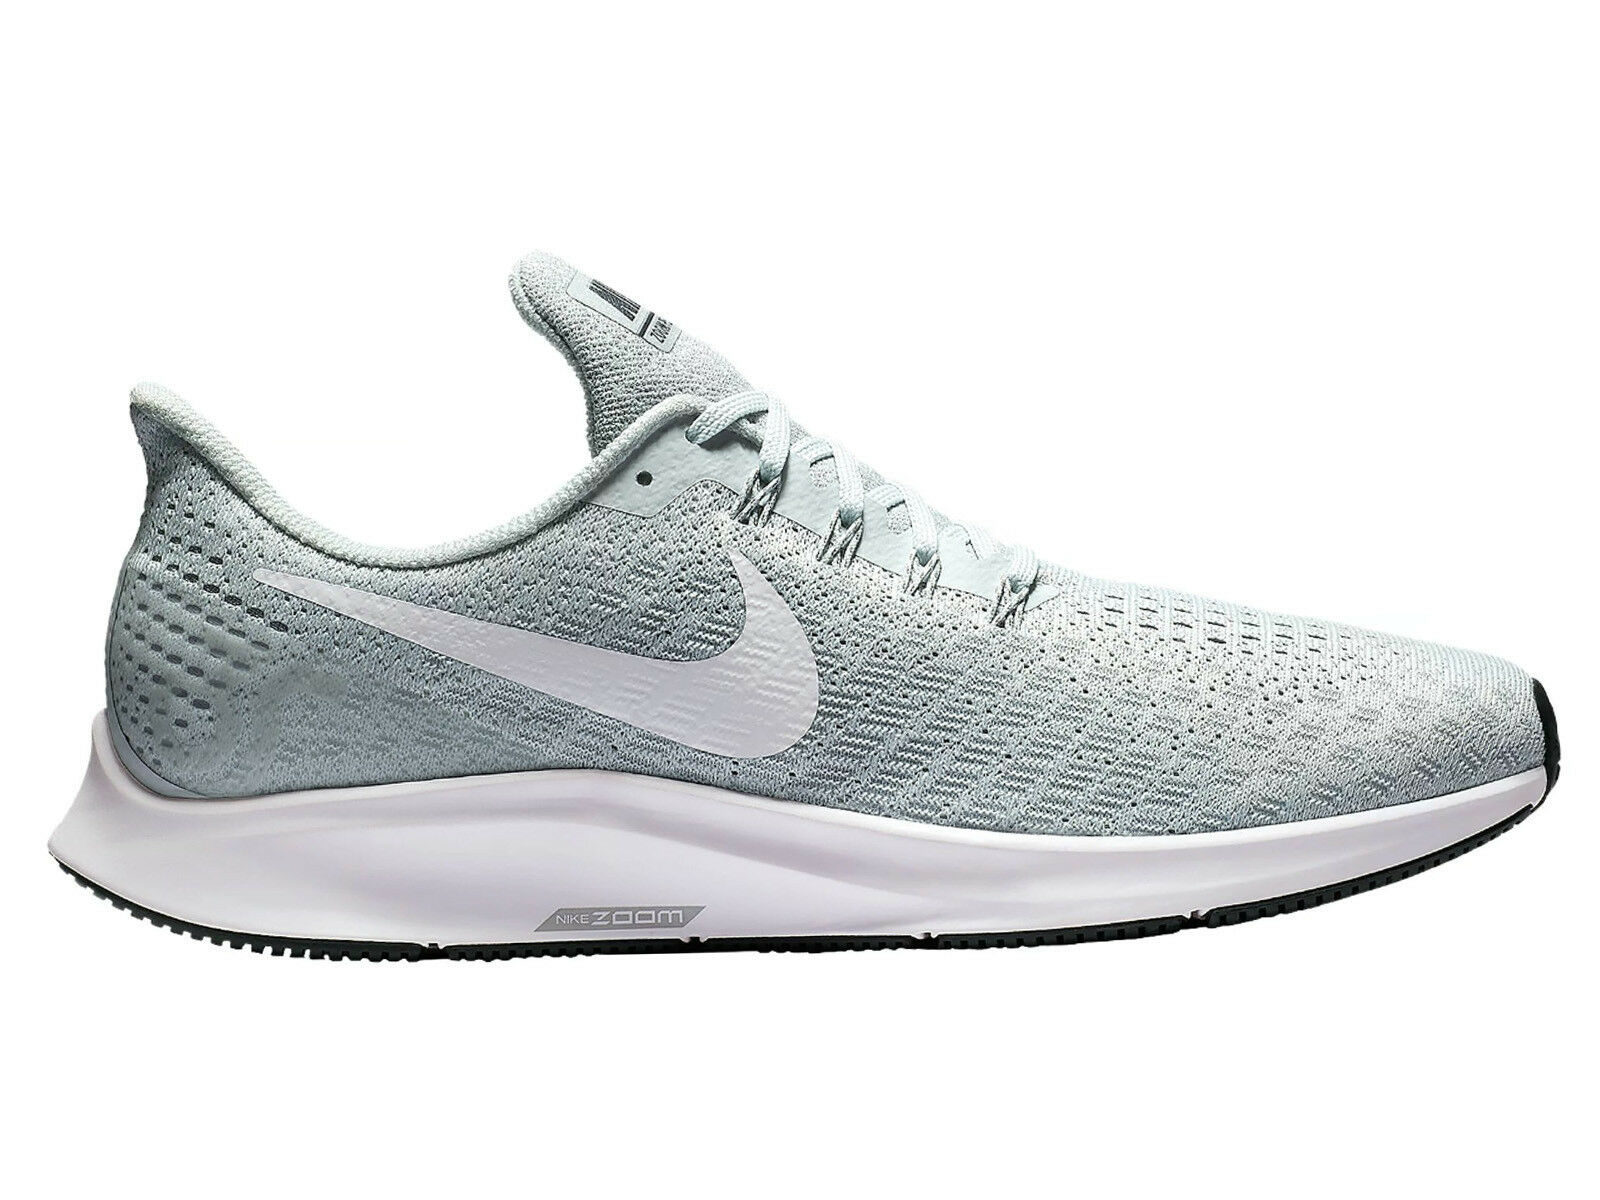 Men's Nike Air Zoom Pegasus 35 Running Shoes Trainers Pure Platinum/White/Wolf